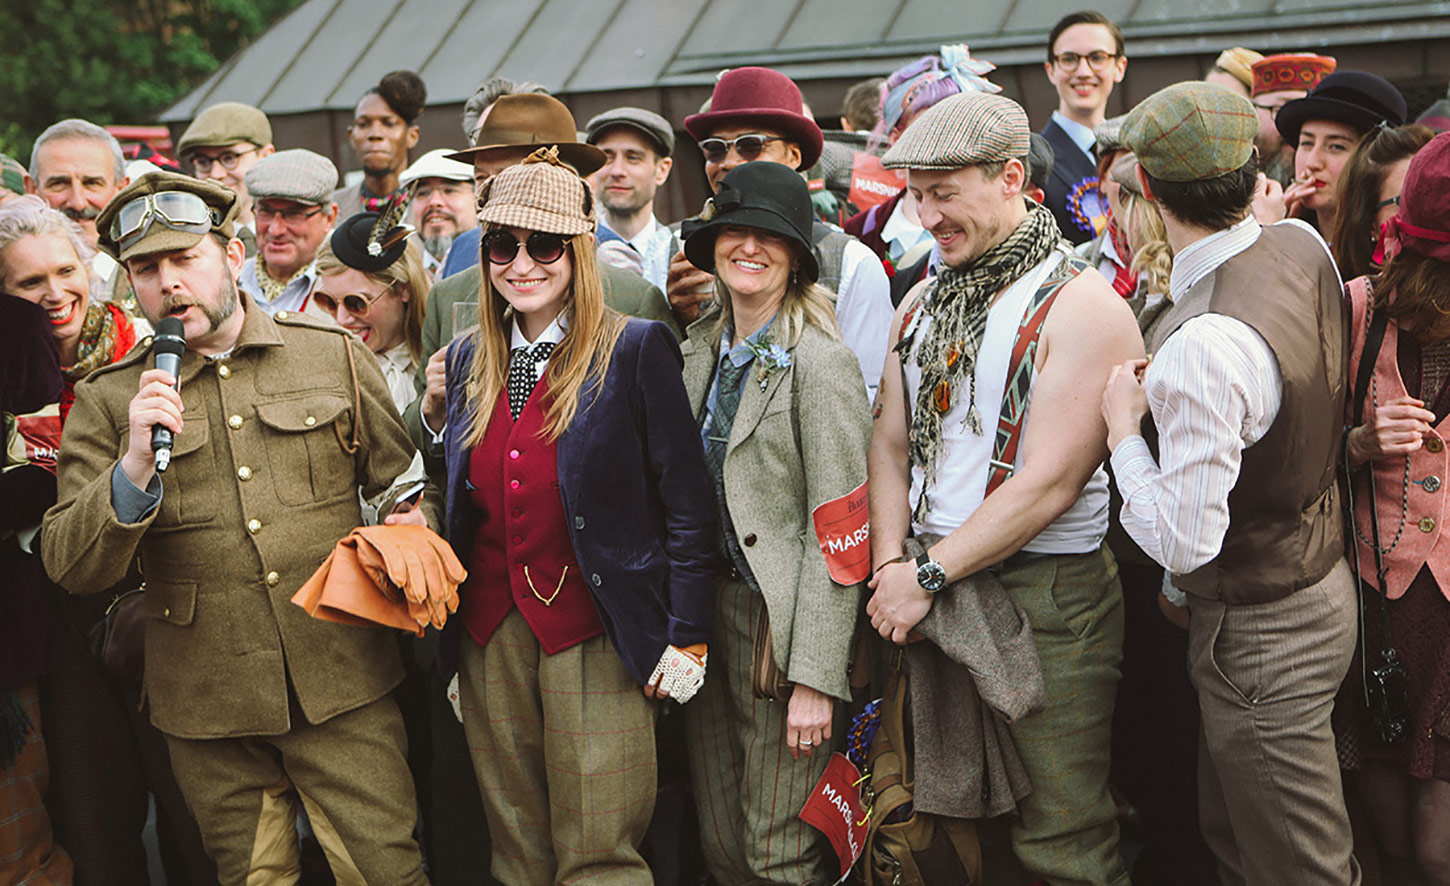 The heroes of Tweed Run London 2017, The Marshals